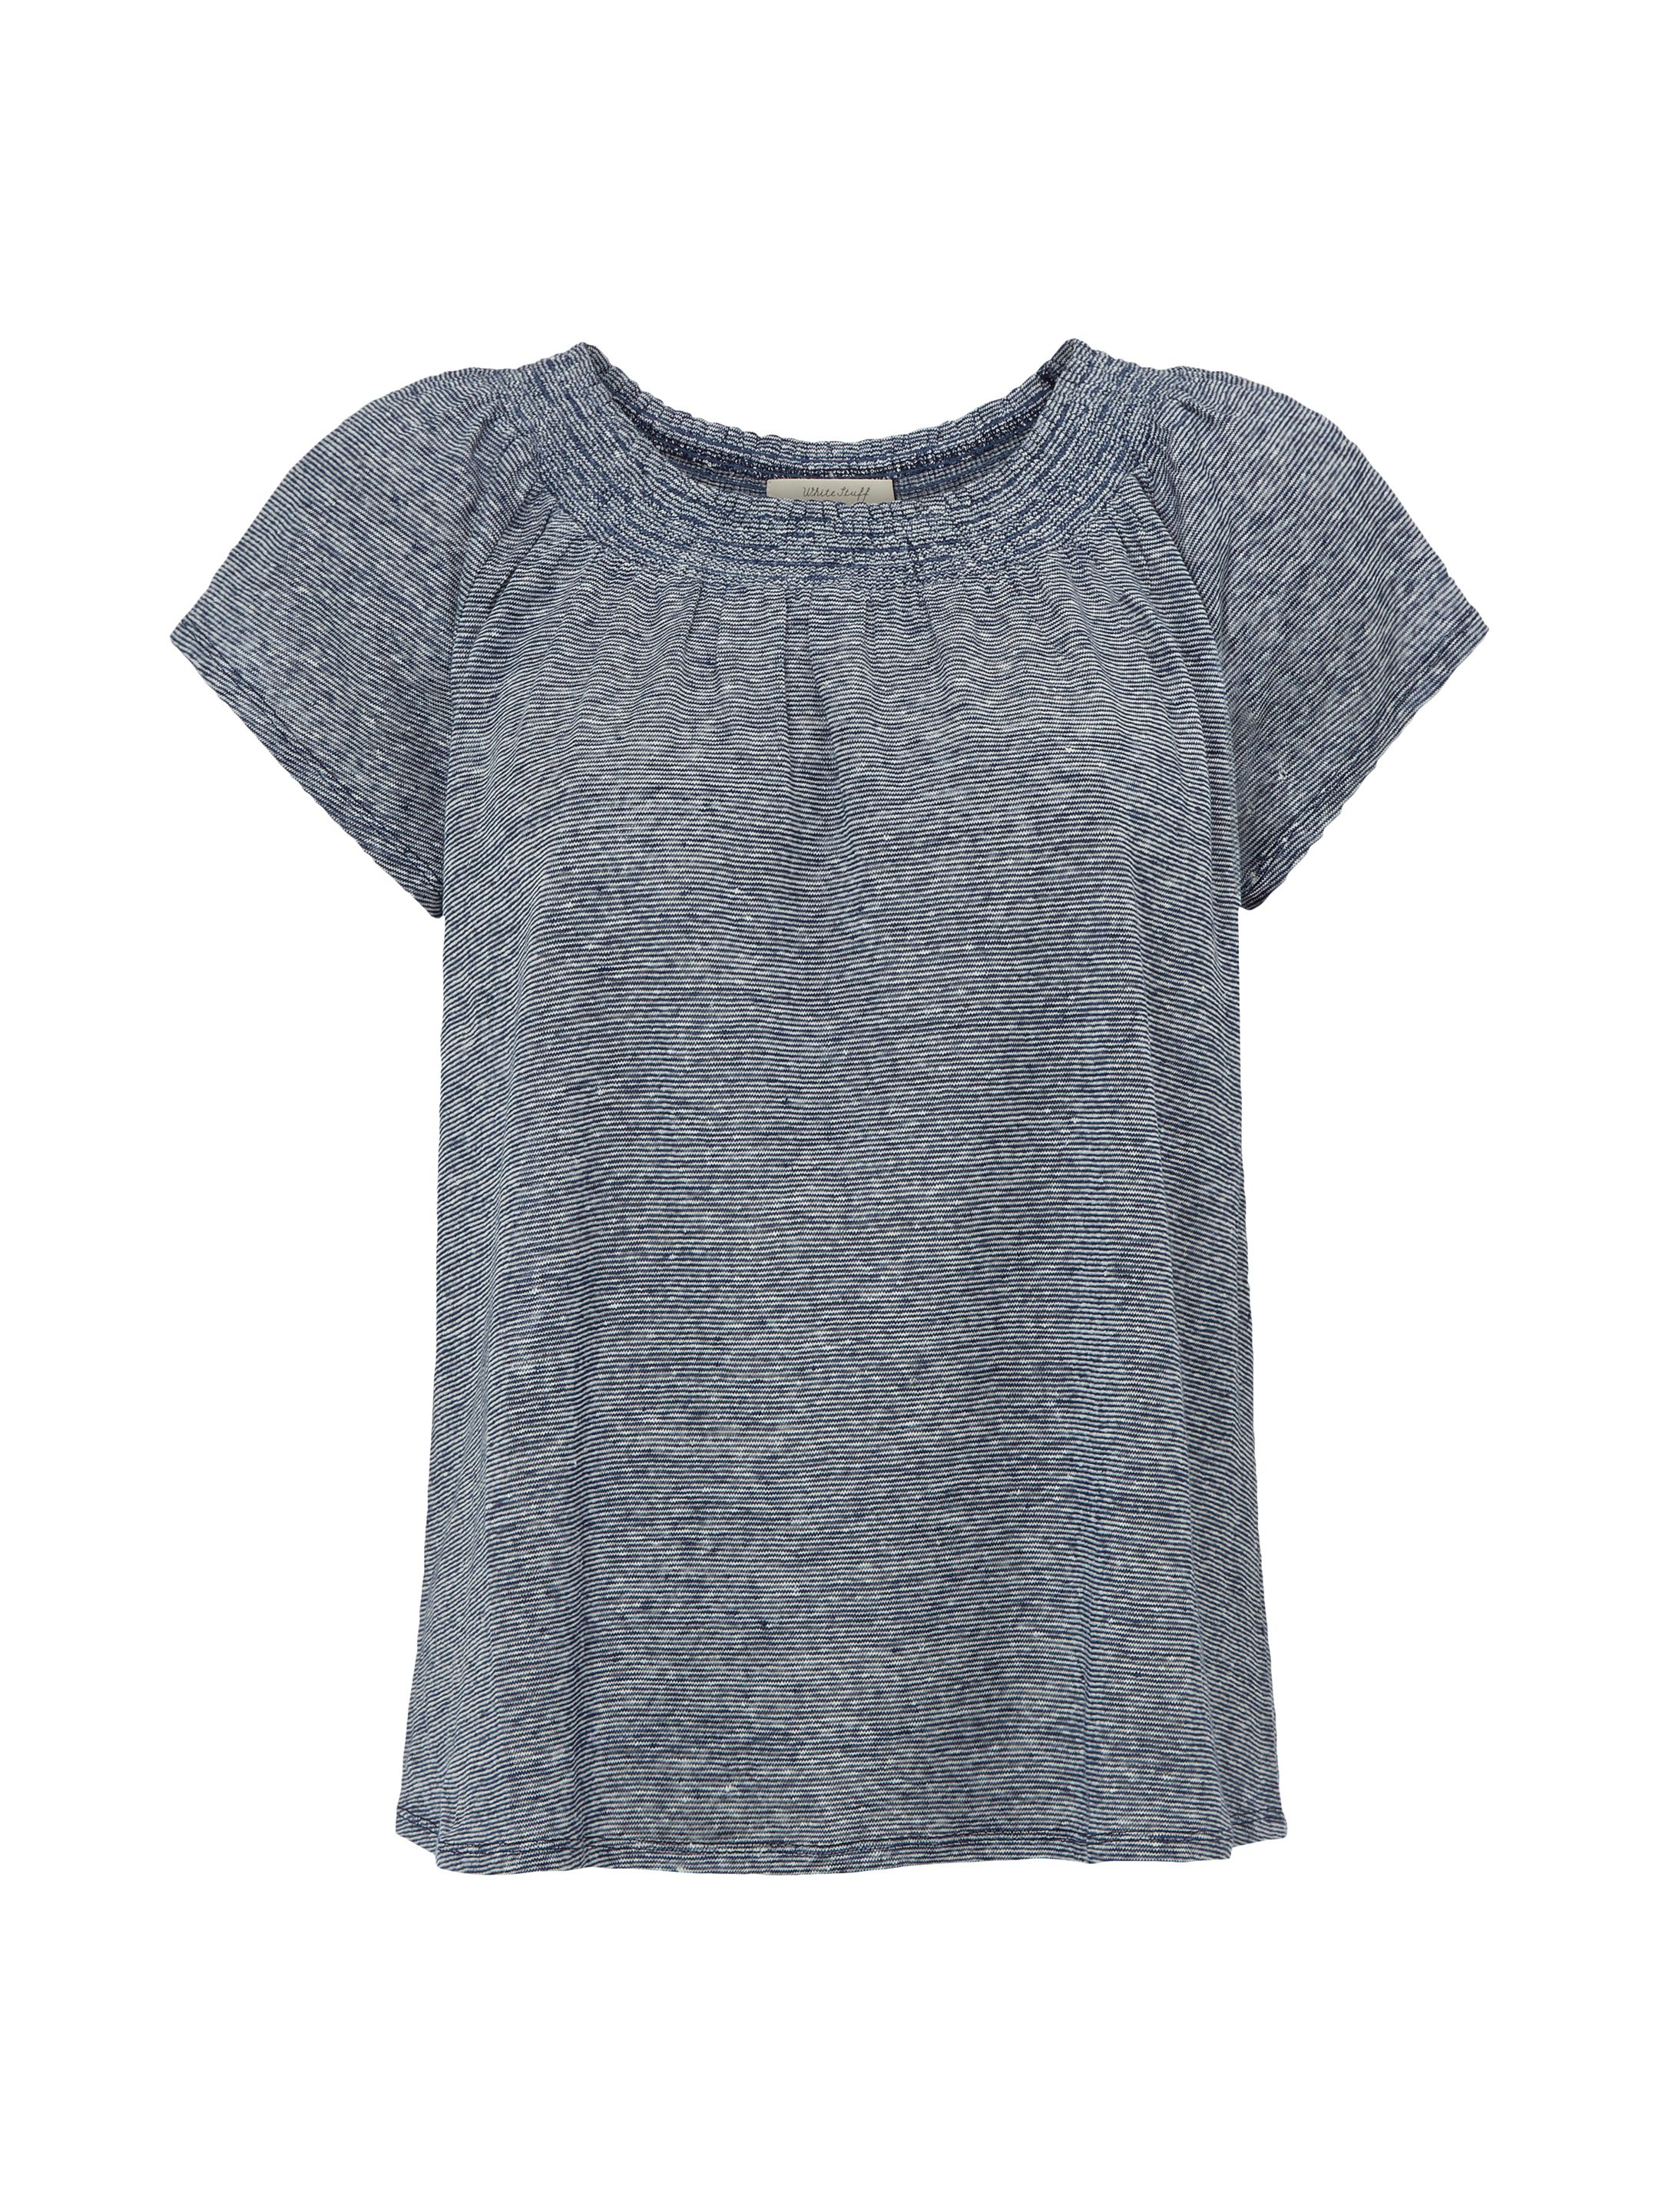 White Stuff Jemma Shirring Jersey Tee, Blue